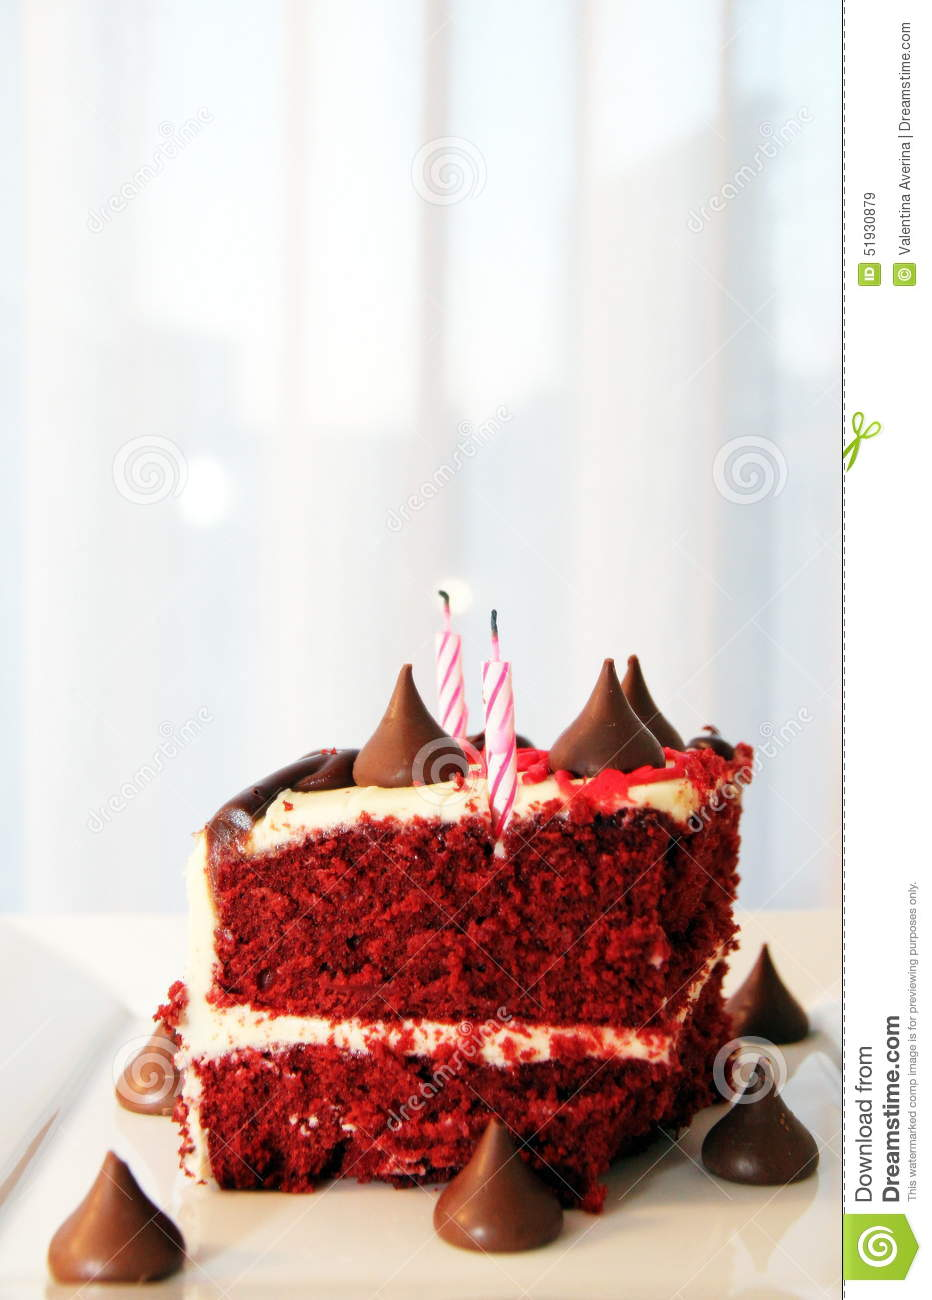 Very Tasty And Beautiful Cake With Candles Birthday Stock Image